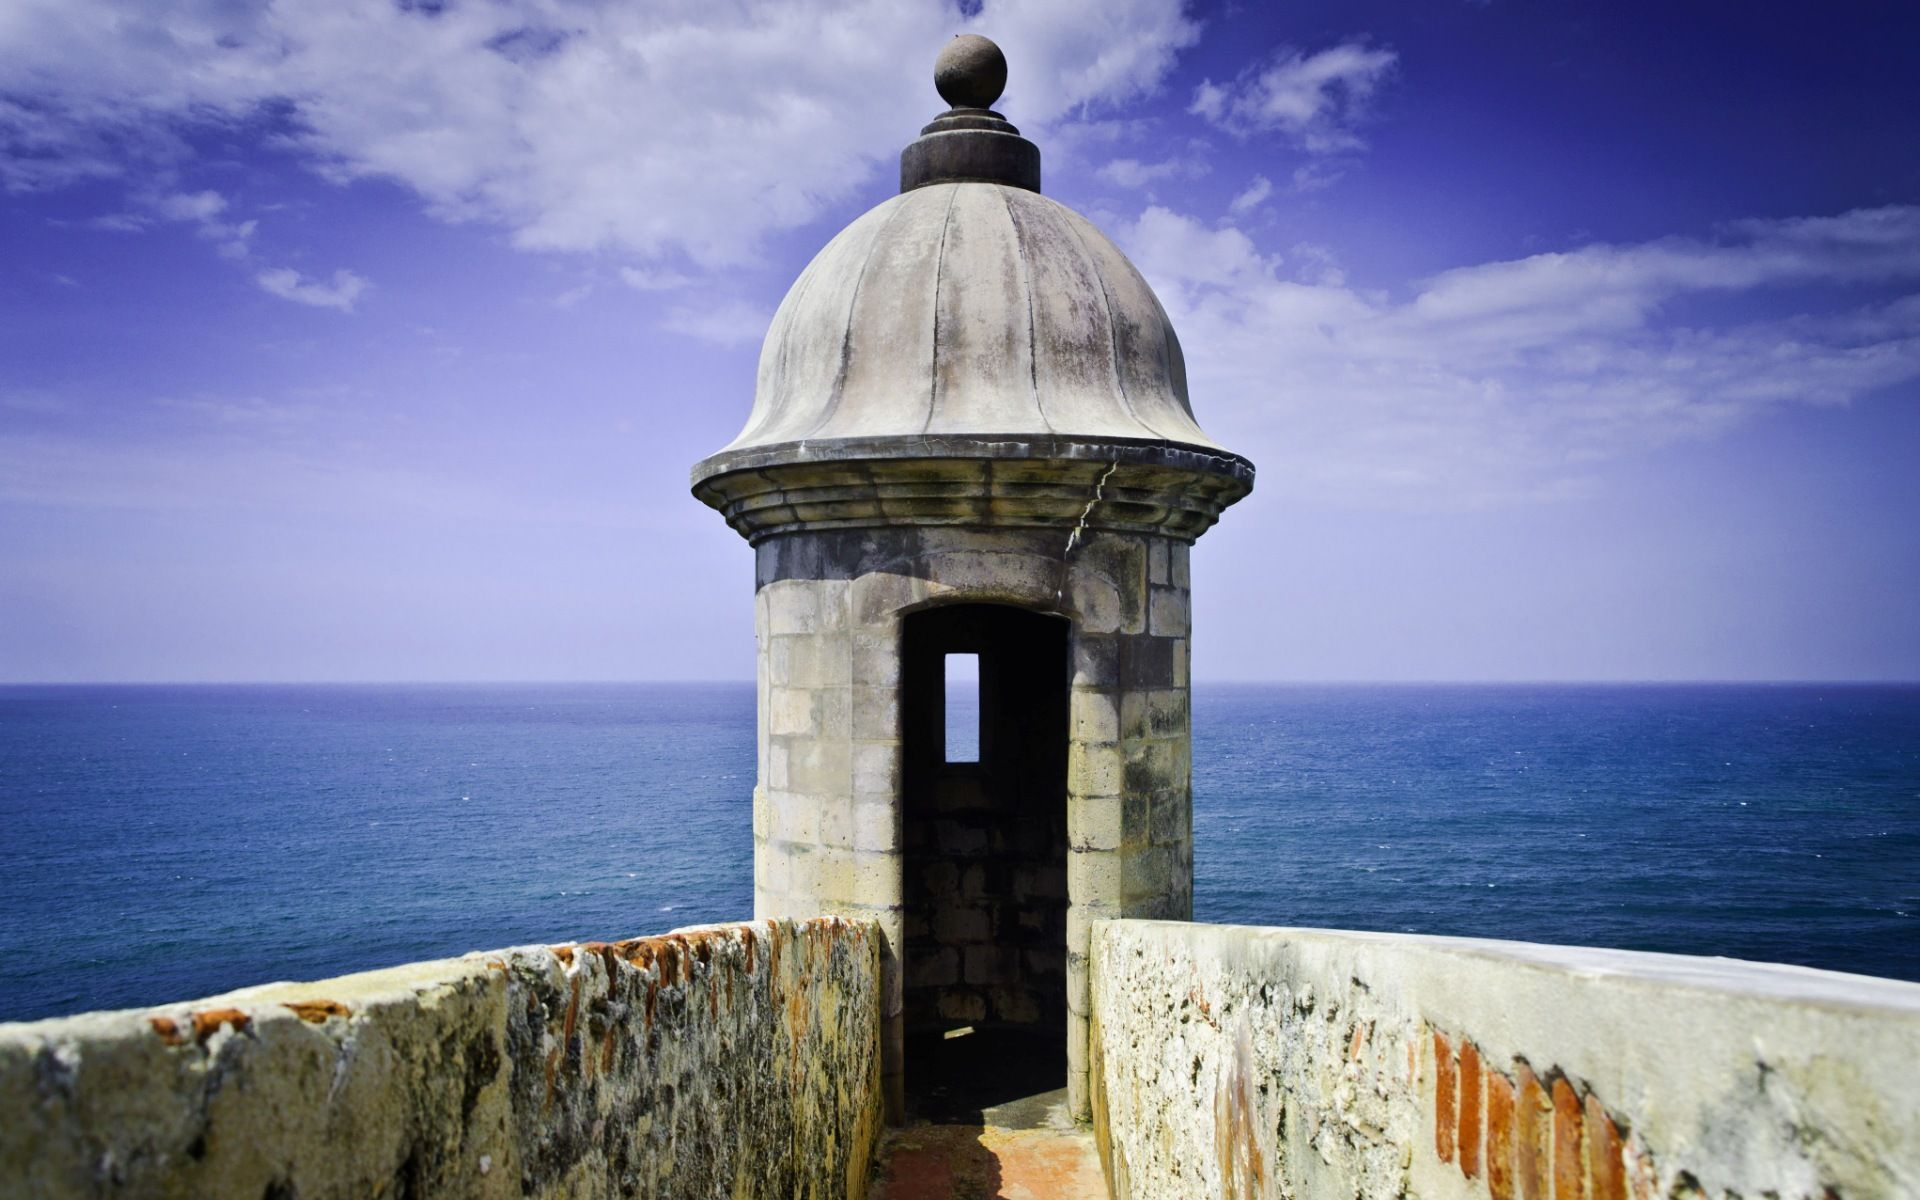 Puerto rico wallpapers background amazing wallpapers in - Puerto rico beach background ...